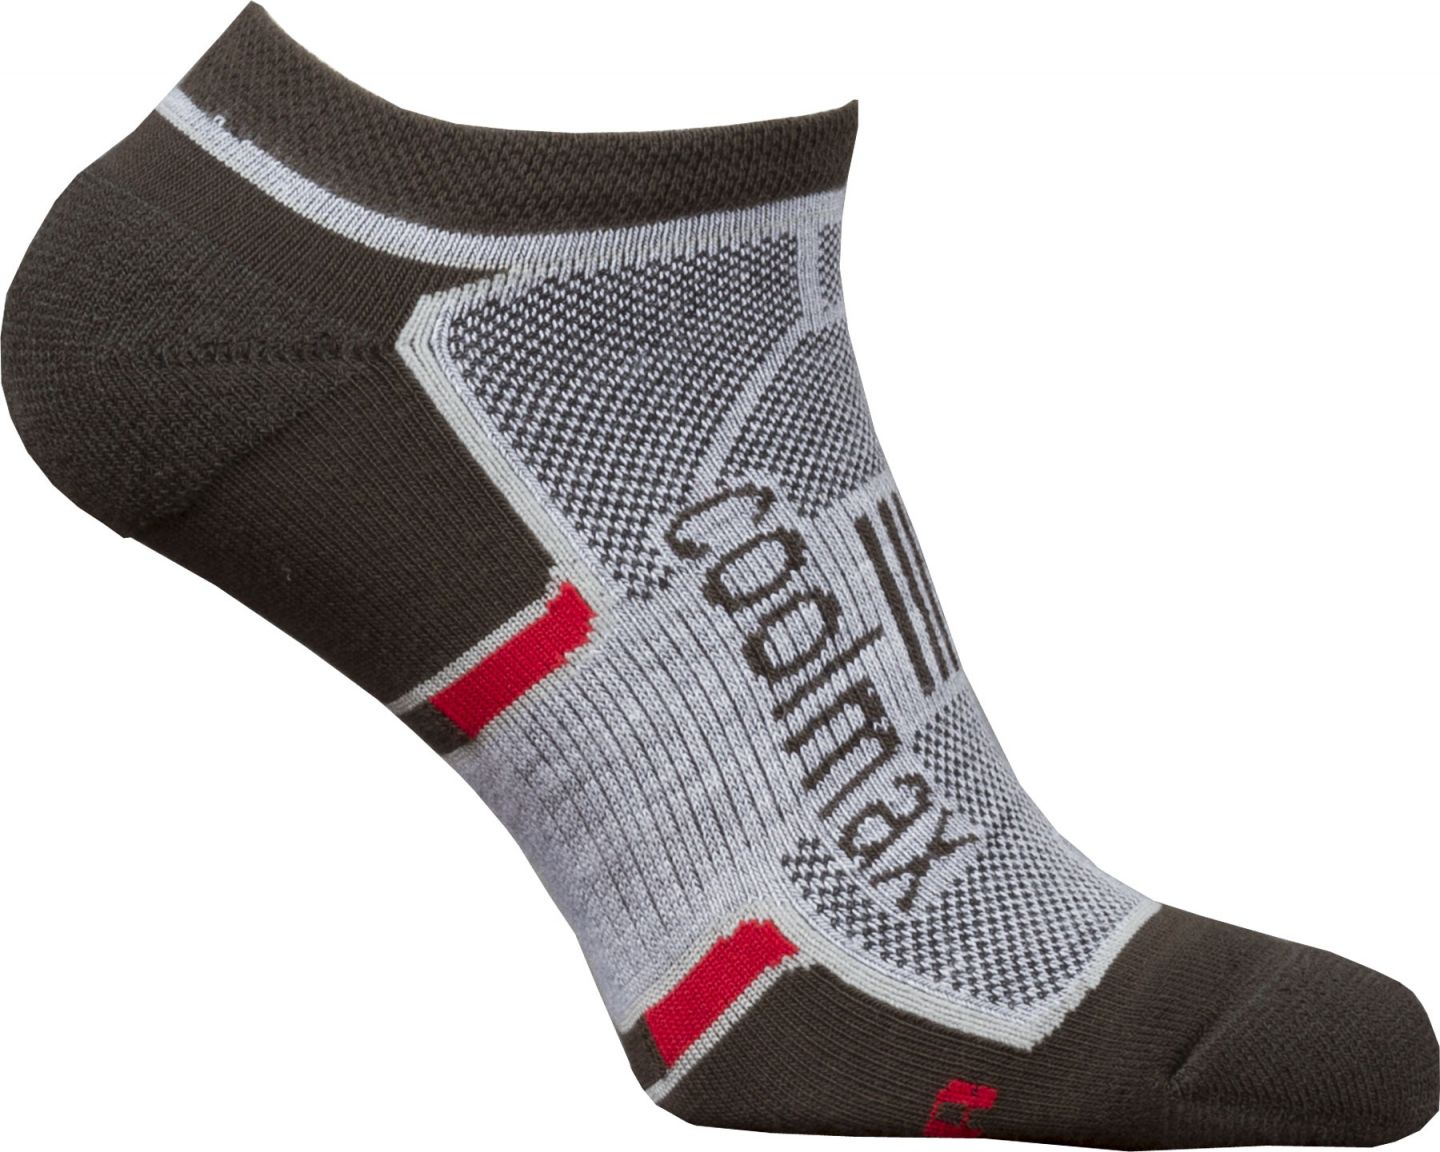 ACTIVE 2.0 INVISIBLE SOCKS  a18a4830c9